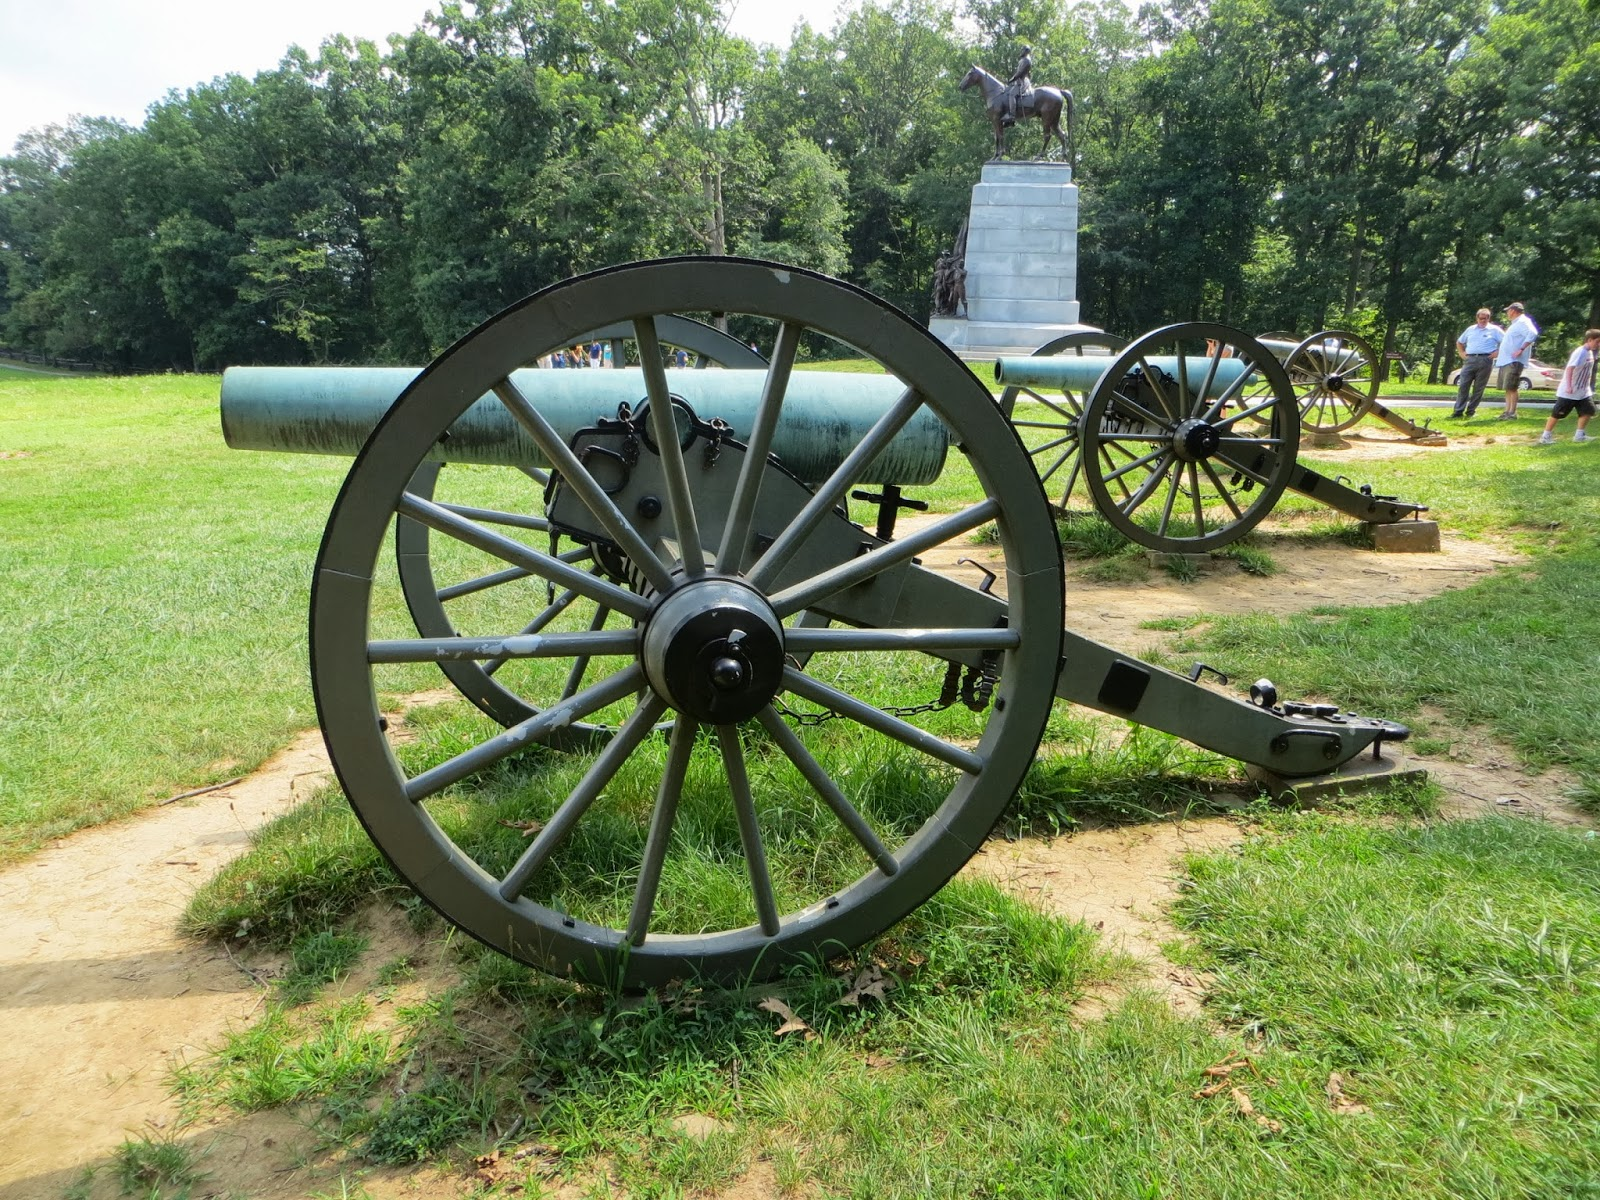 battle essay gettysburg will write travel photo essay gettysburg national military park will write travel will write travel photo essay gettysburg national military park will